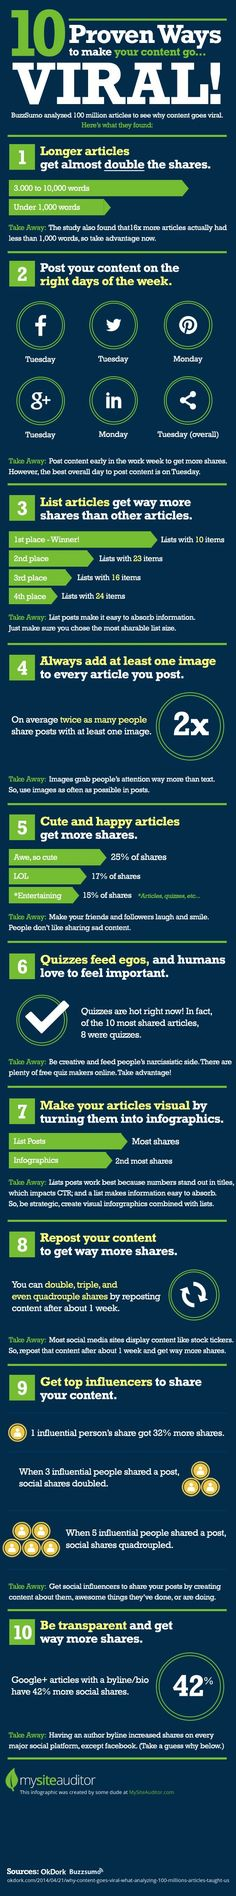 10 Proven Ways to Make Your Content Go Viral [Infographic] | Jason and Company Notes